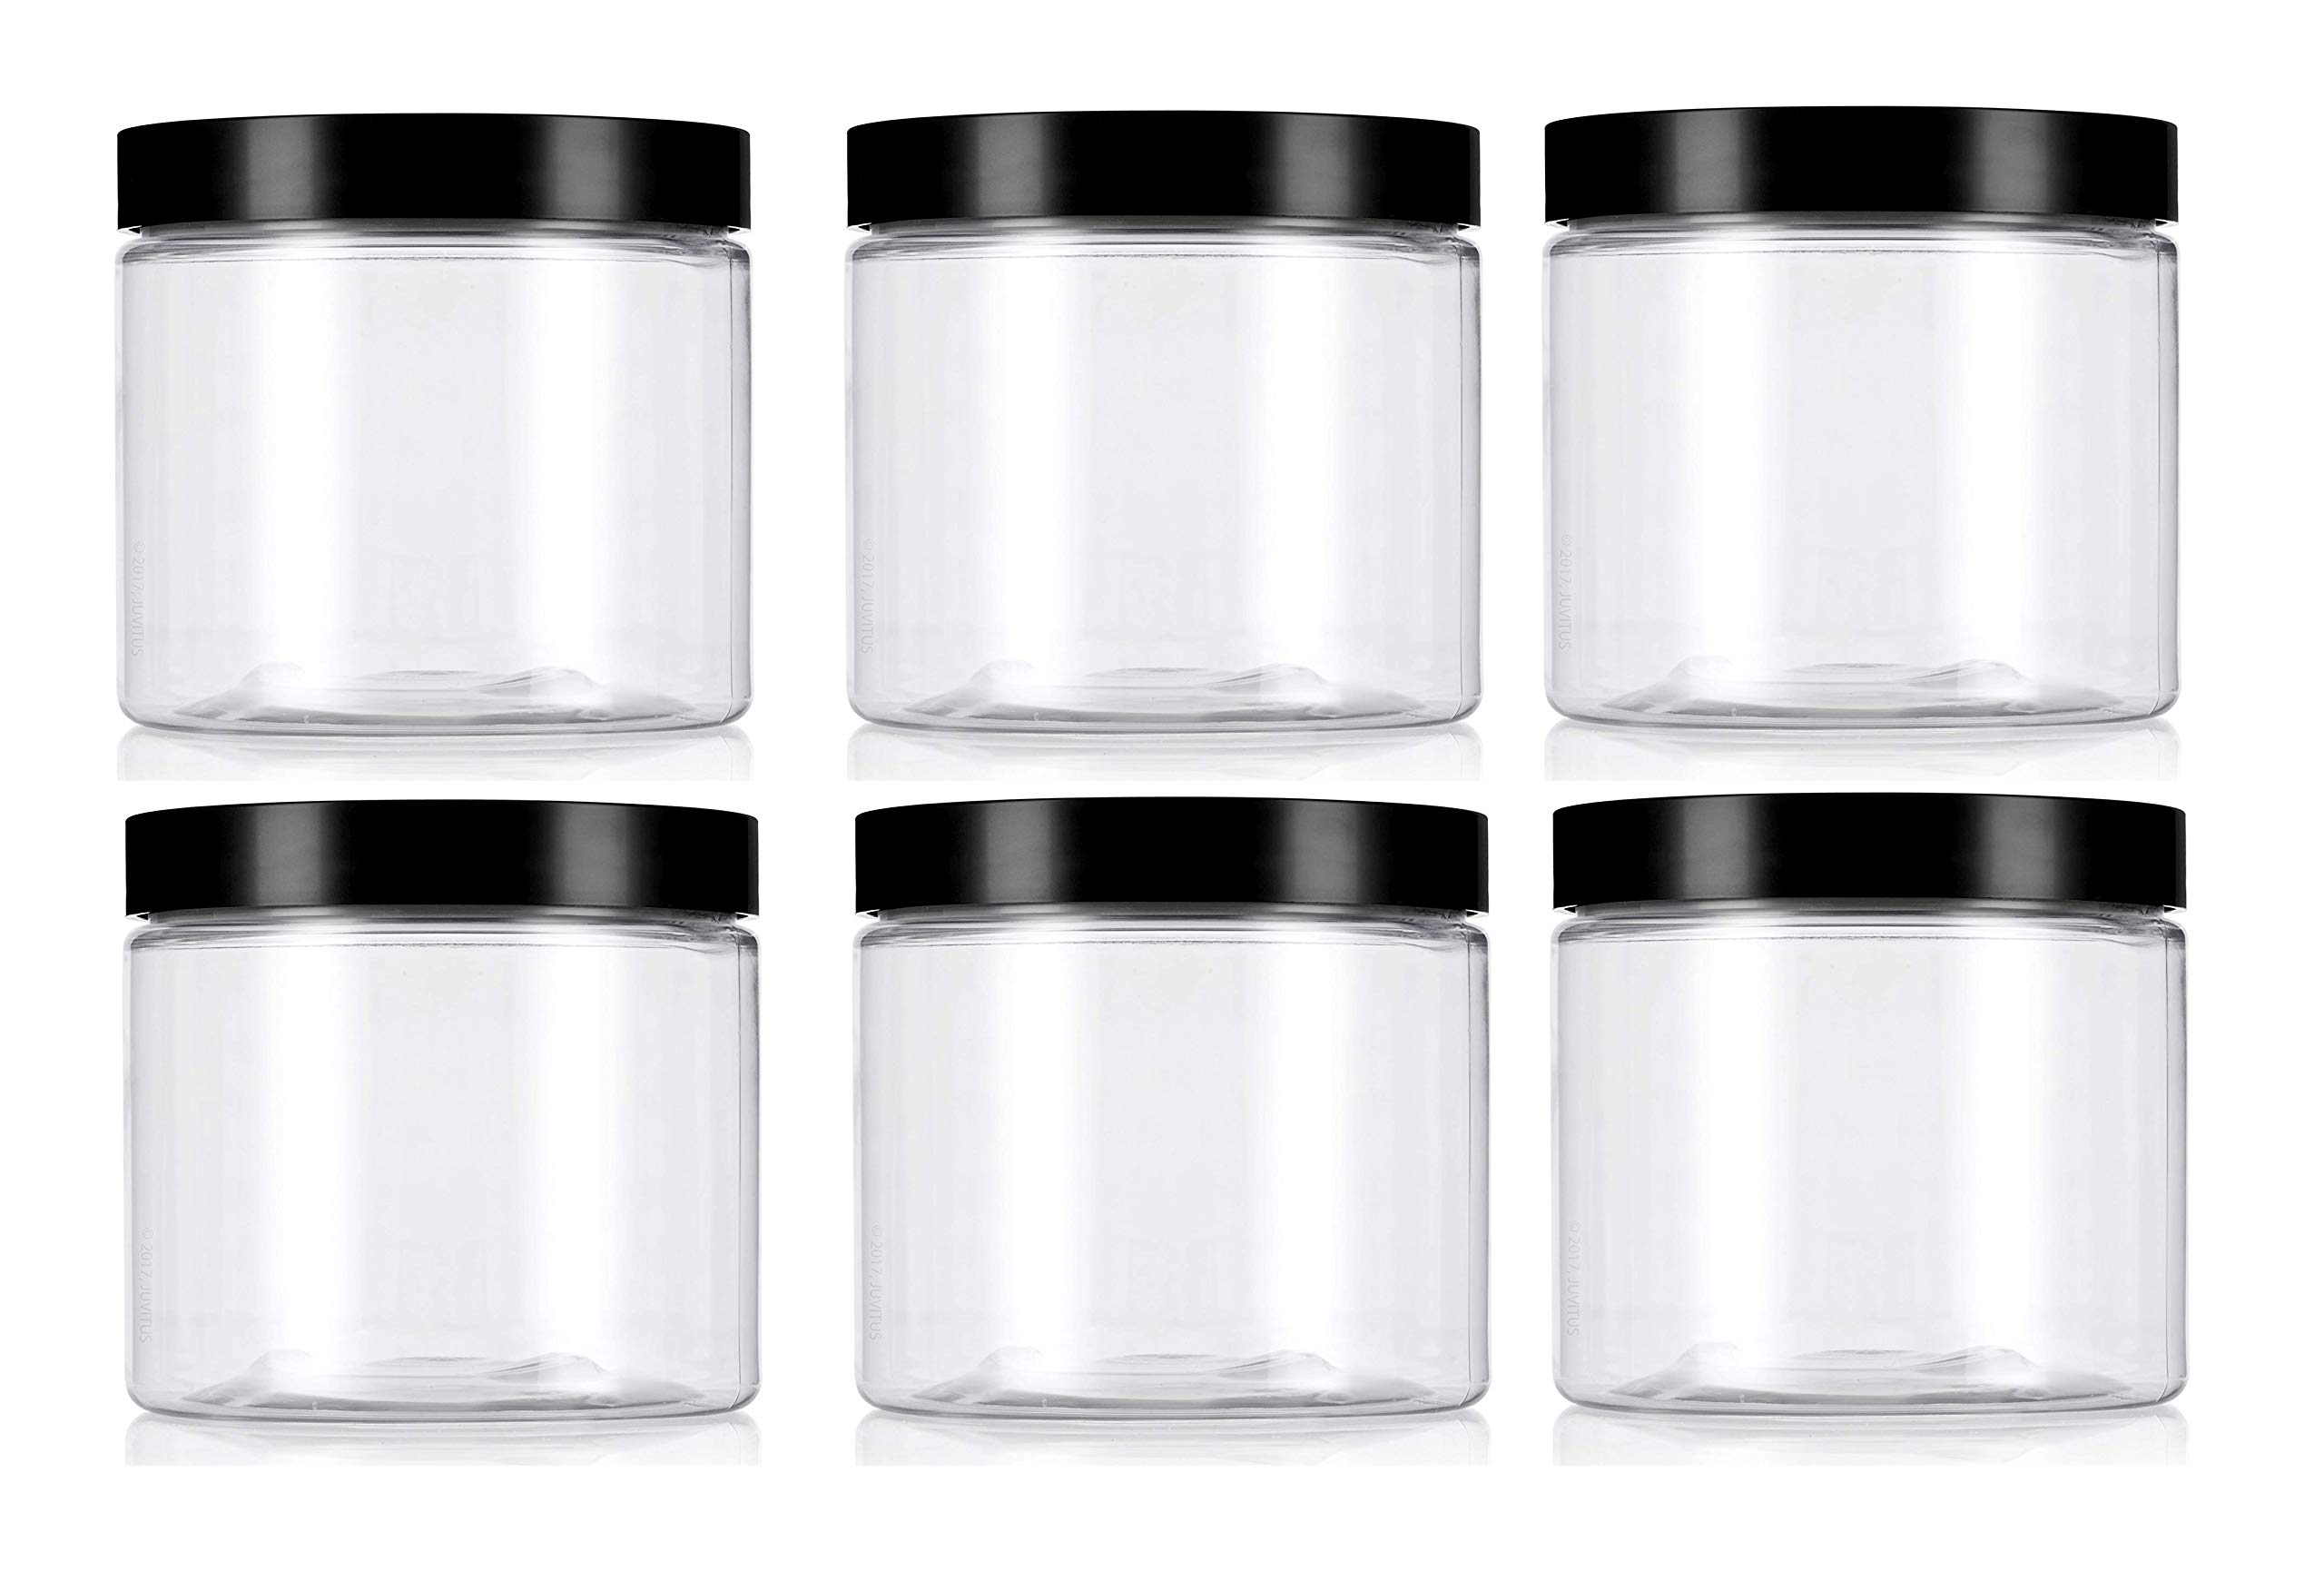 PremiumVials Pack of 6 Premium Vials 4OzFGJarB-6-ZT Frosted 4 oz Glass Jar with smooth black lid